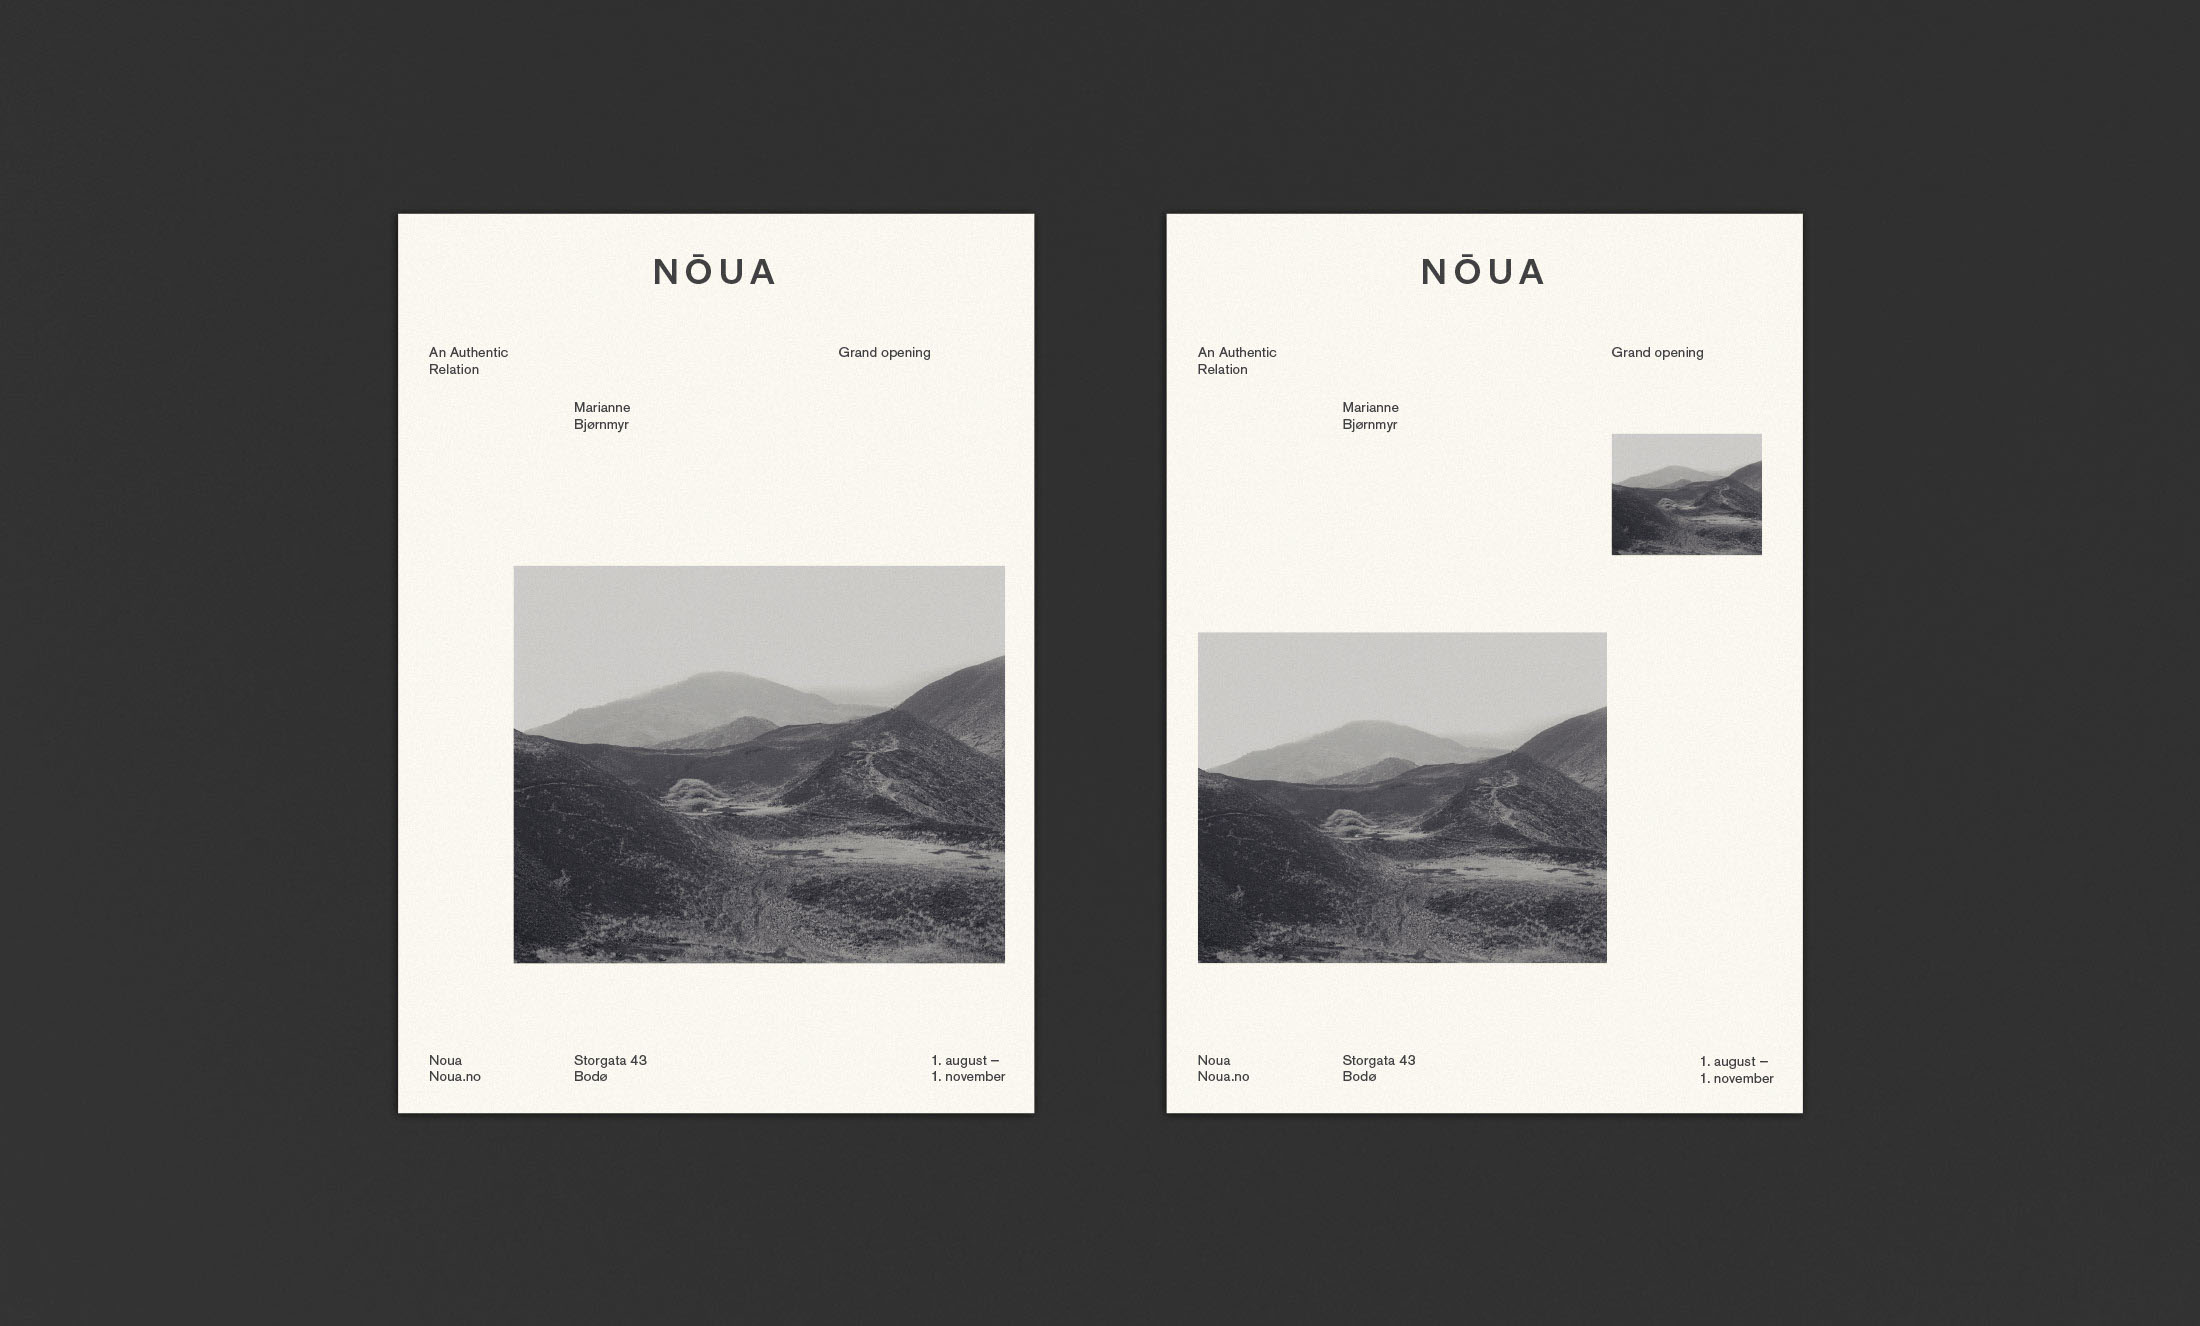 noua-by-north-09